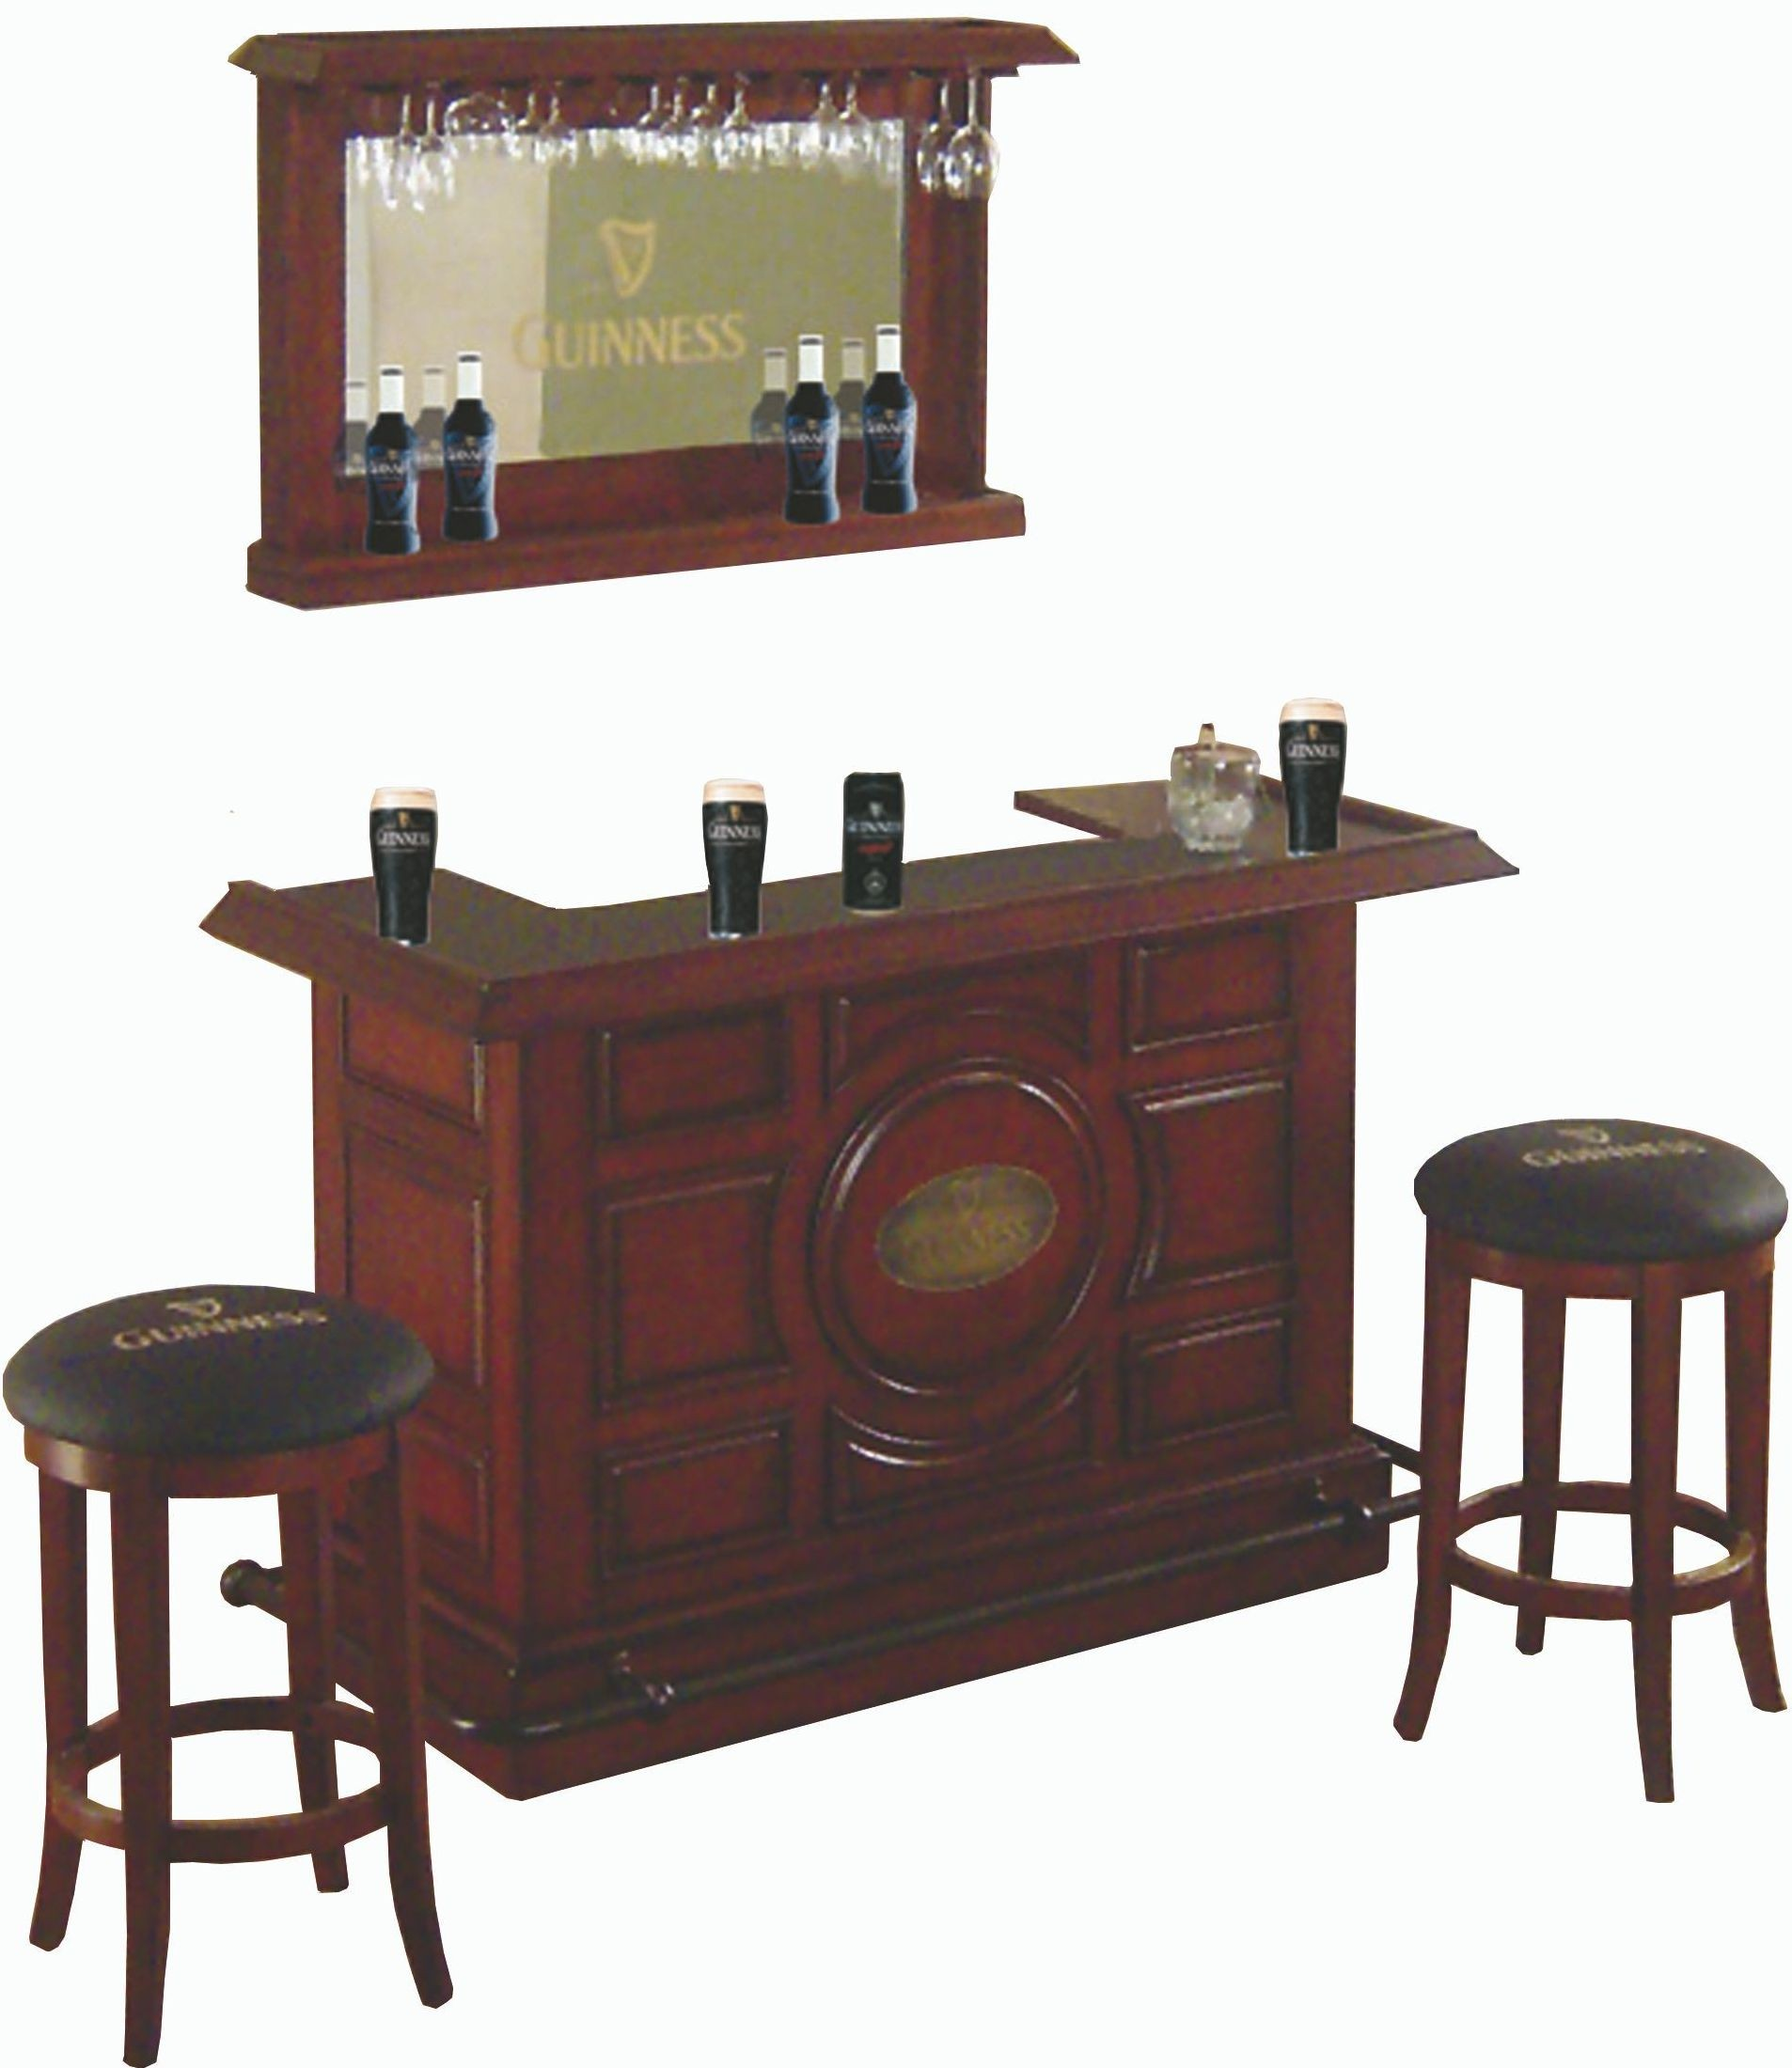 Guinness Distressed Walnut Raised Panel Bar Set From Eci